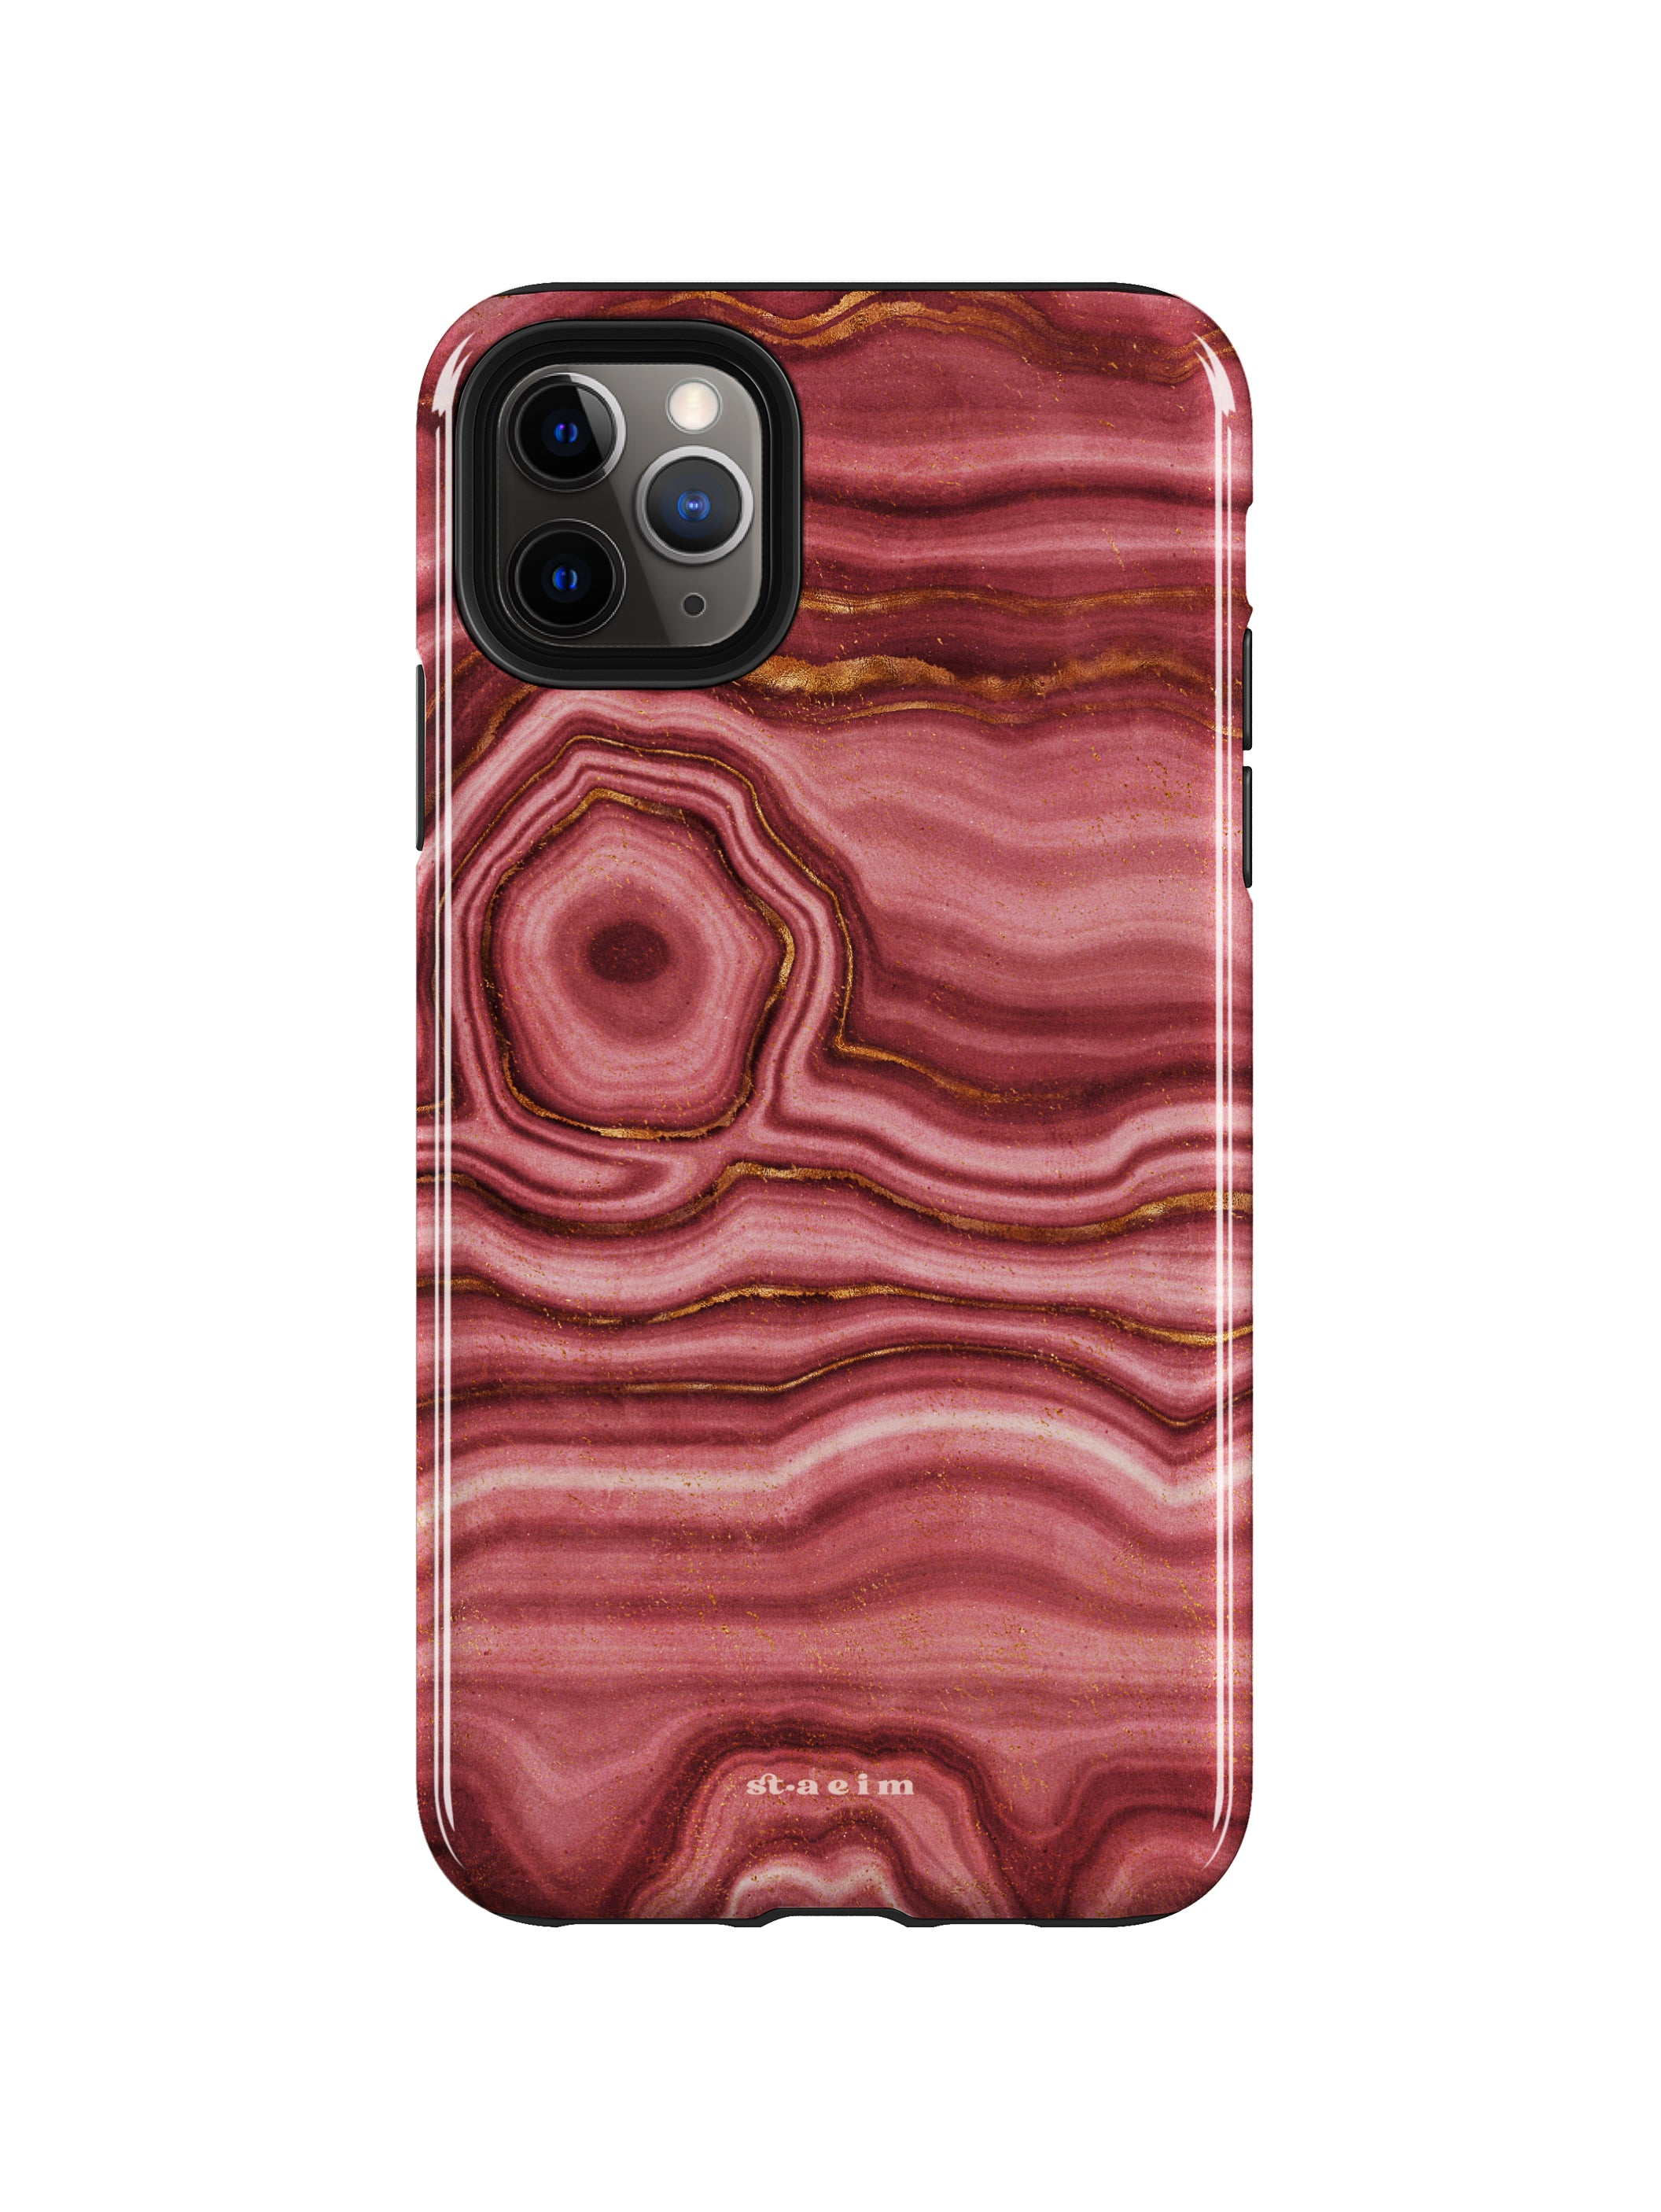 STAEIM | The Flow Agate Marble iPhone 11 Pro Case